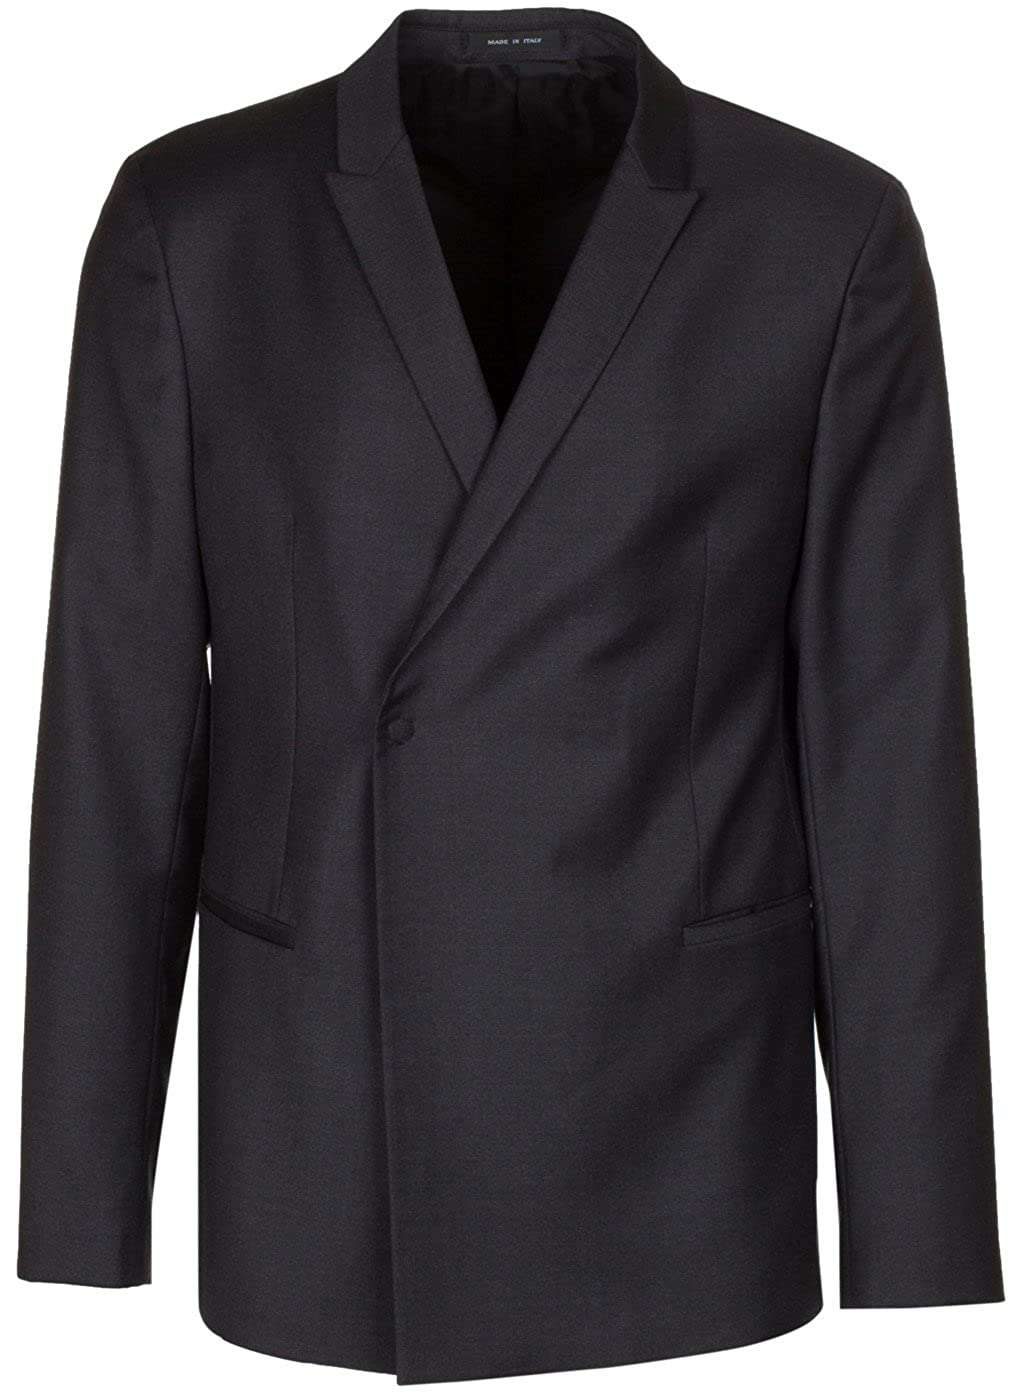 5597edc6 Black Emporio Armani Men's Black 100% 100% 100% Wool One Button Blazer  Sport Coat Jacket 8e14bb